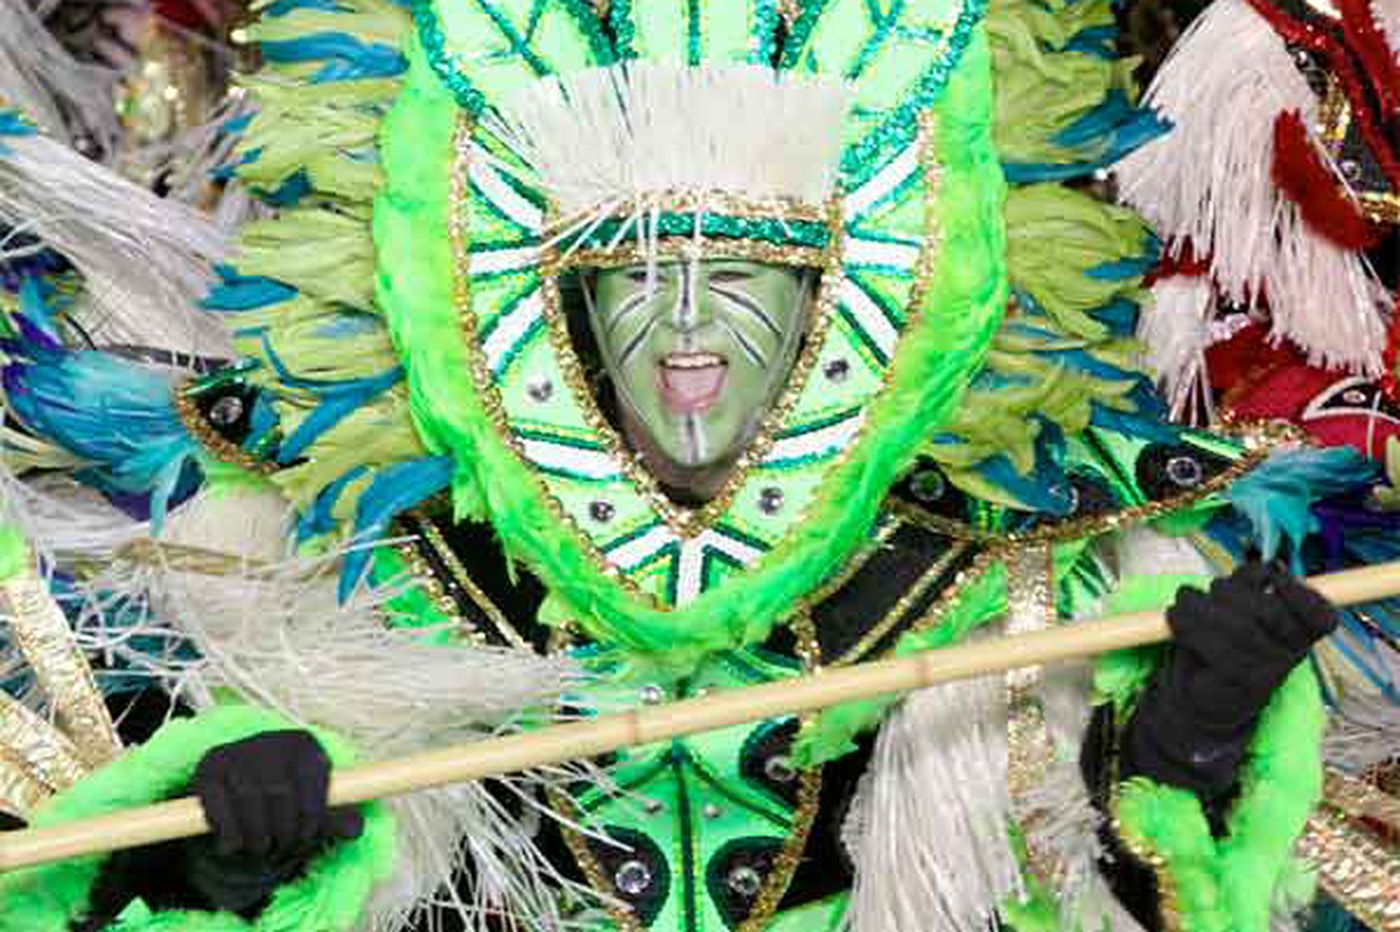 Mummers upgrade 2013 parade with new performers, technology